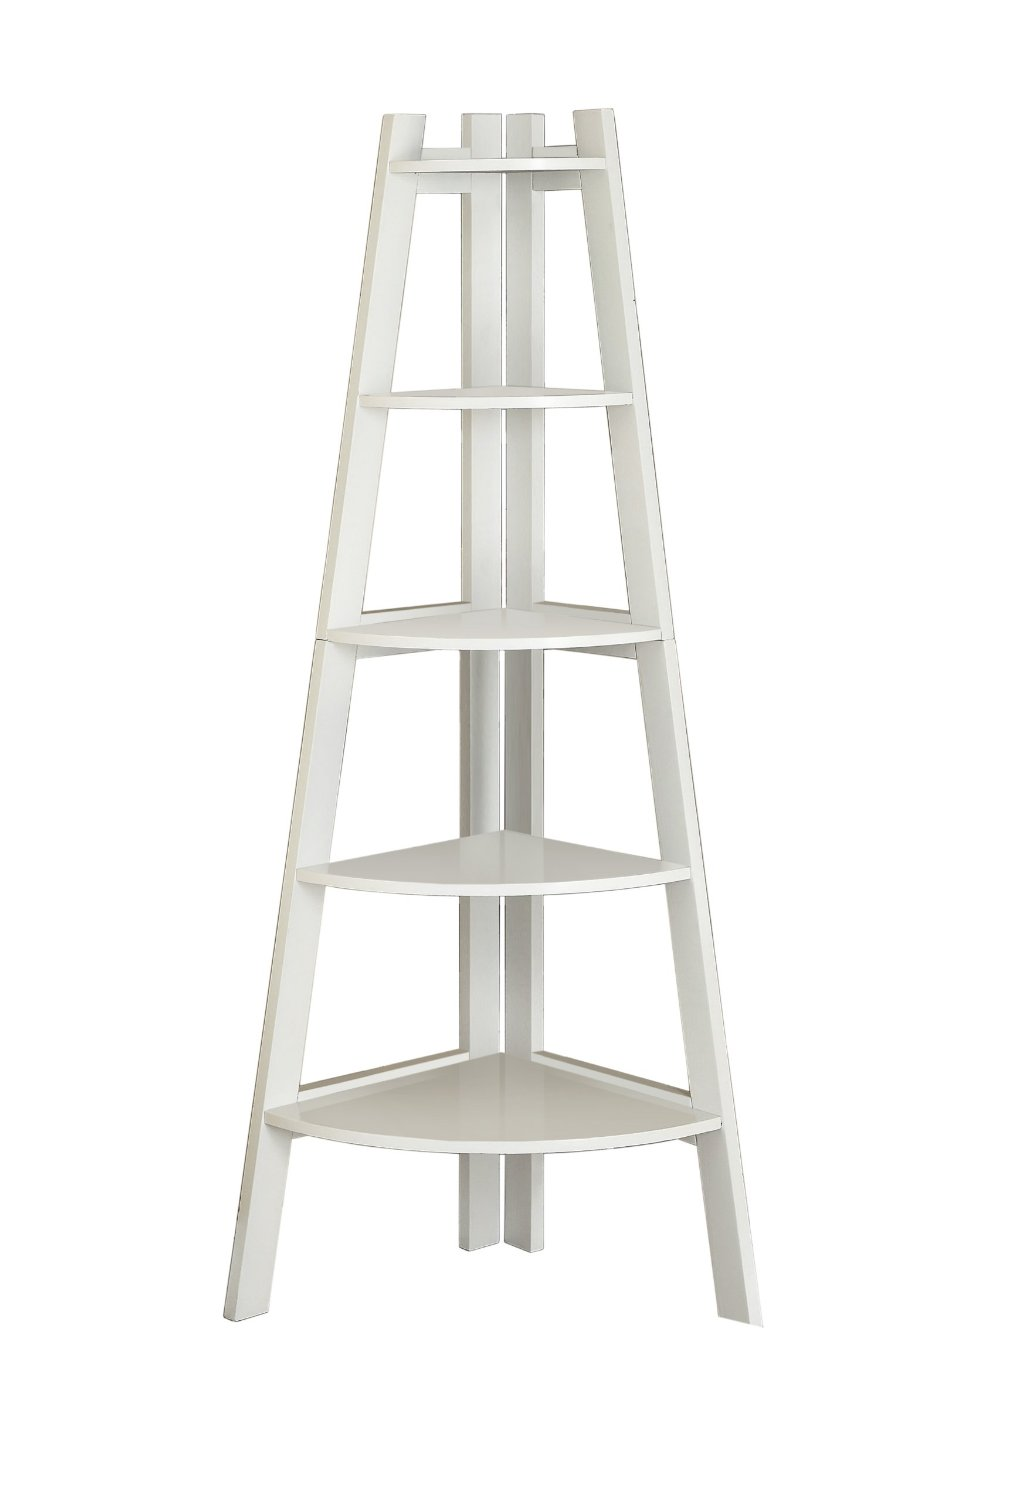 Image of: Design White Ladder Bookcase